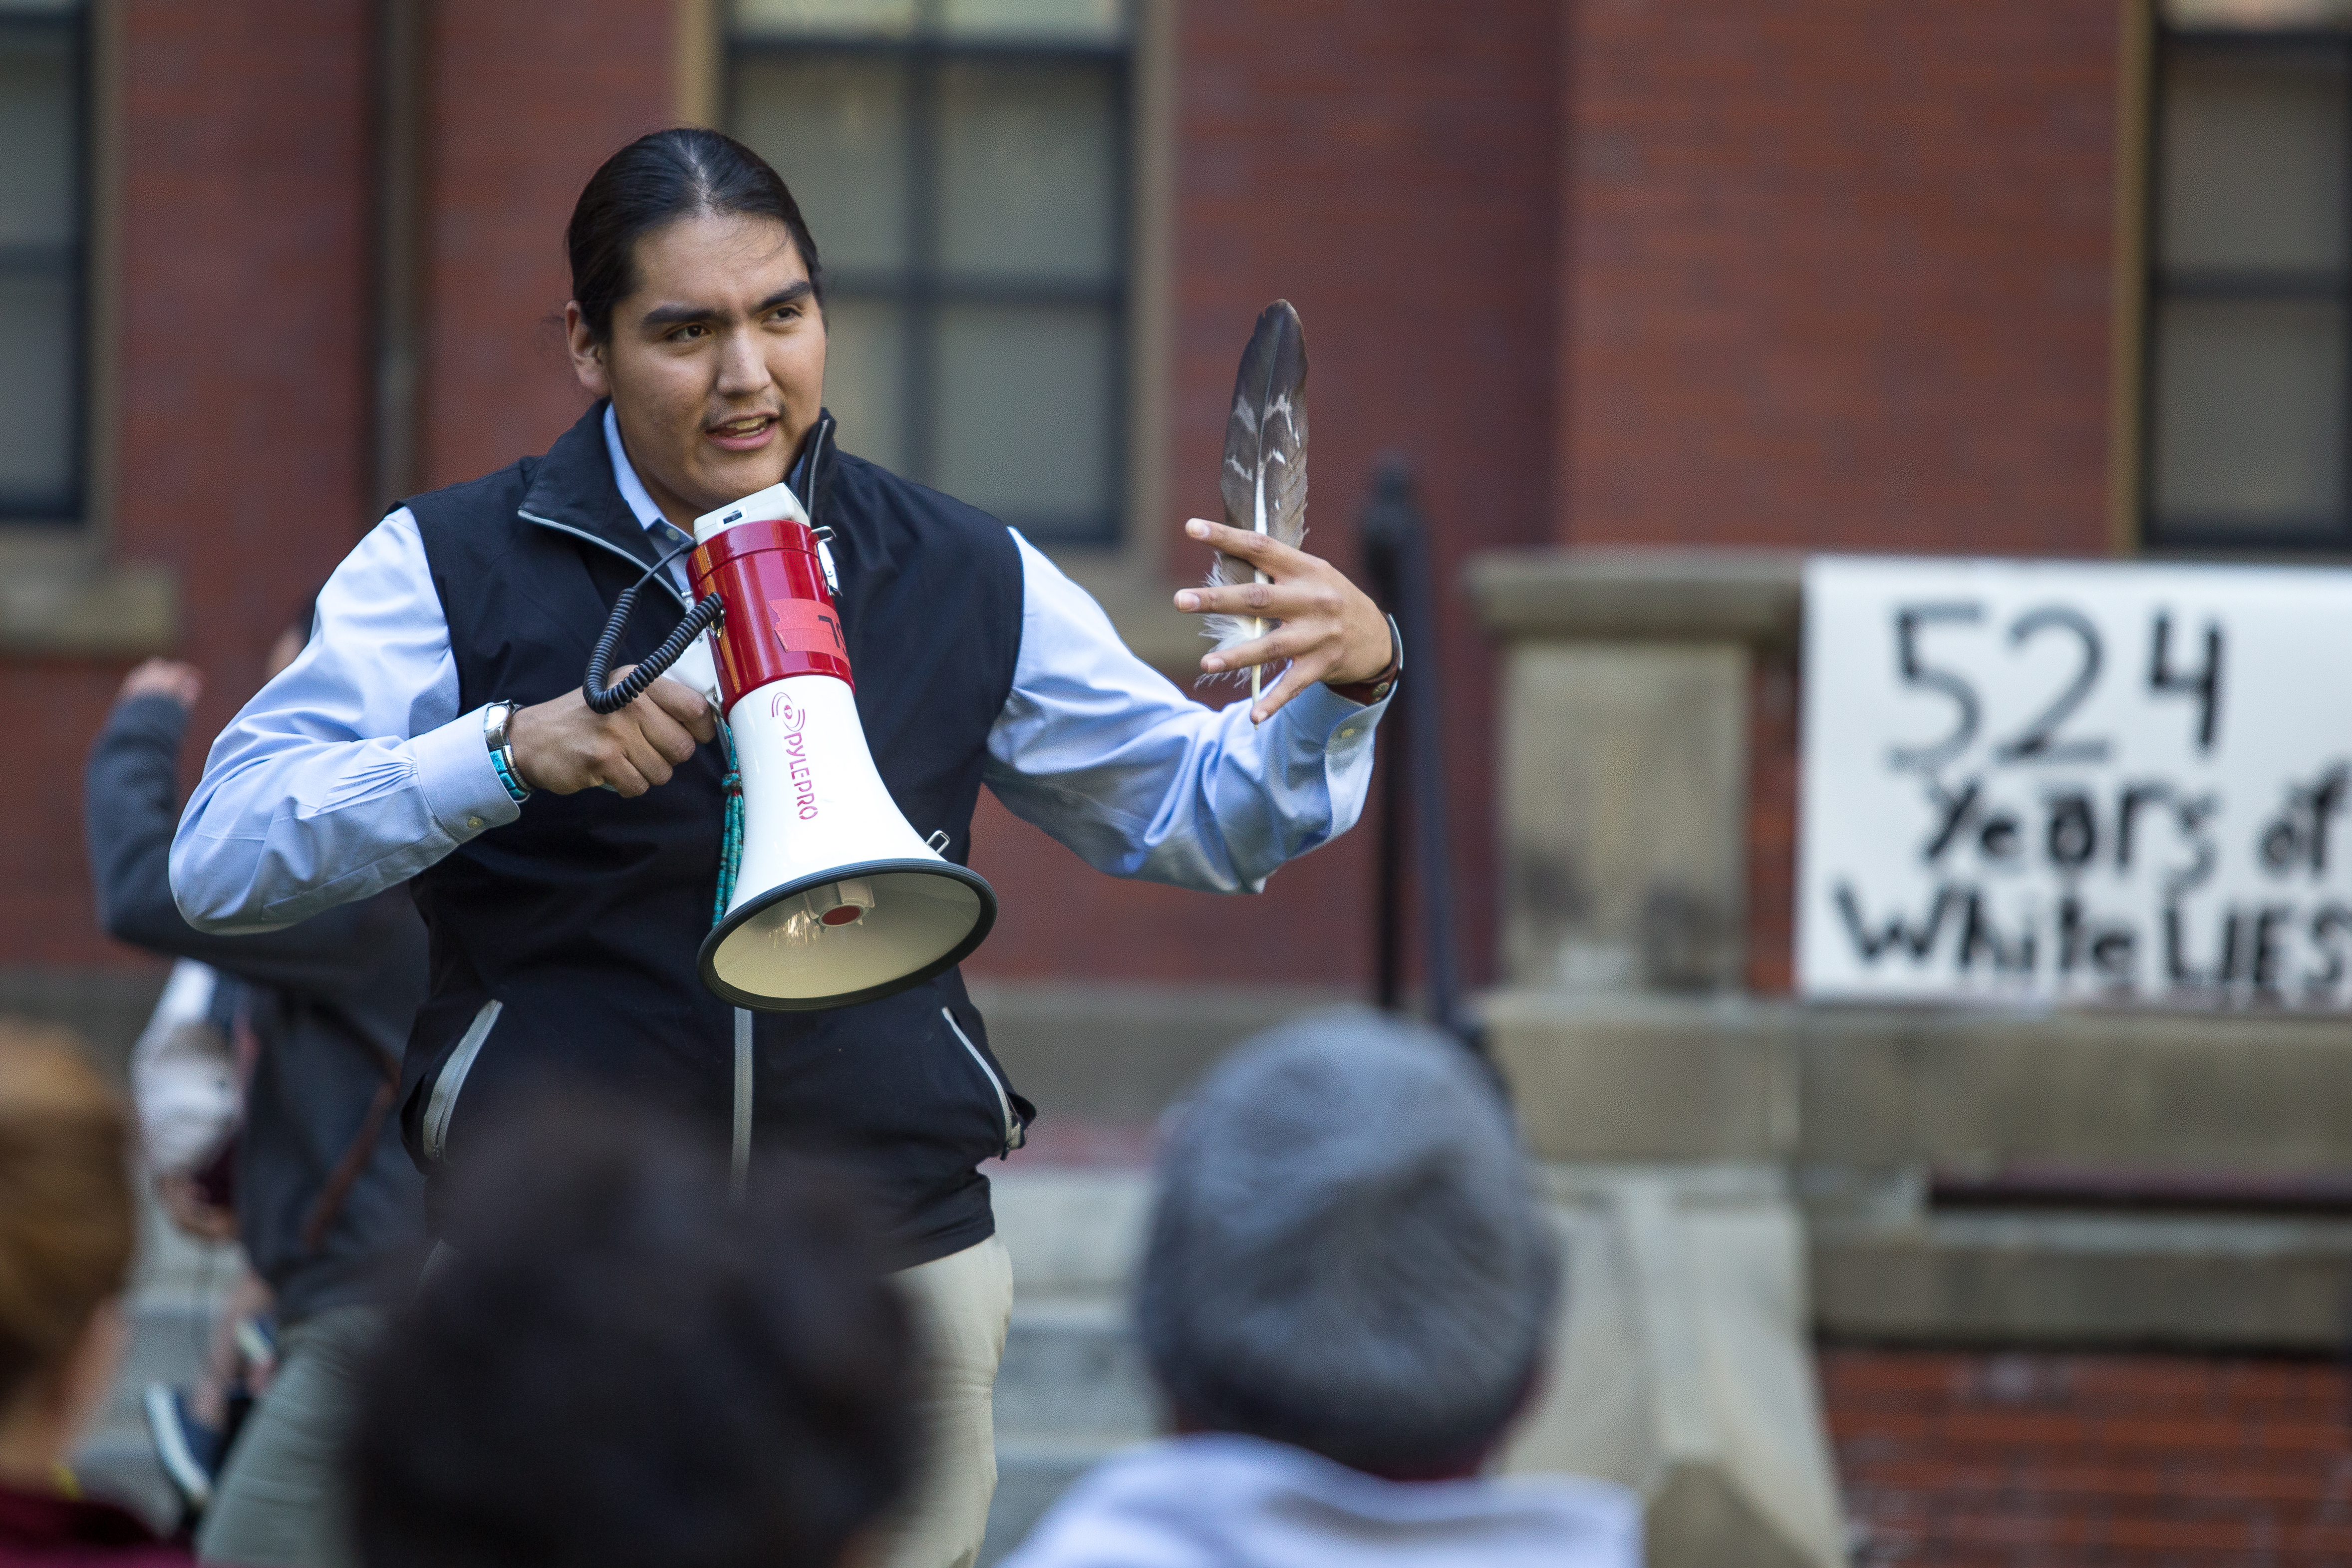 Damon Clark, a member of Native Americans at Harvard College, welcomes attendees to an Indigenous Peoples' Day celebration at Harvard University on Monday evening. More than 100 people gathered in Harvard Yard for conversation and cultural performances. Photo by Alexandra Wimley/BU News Service